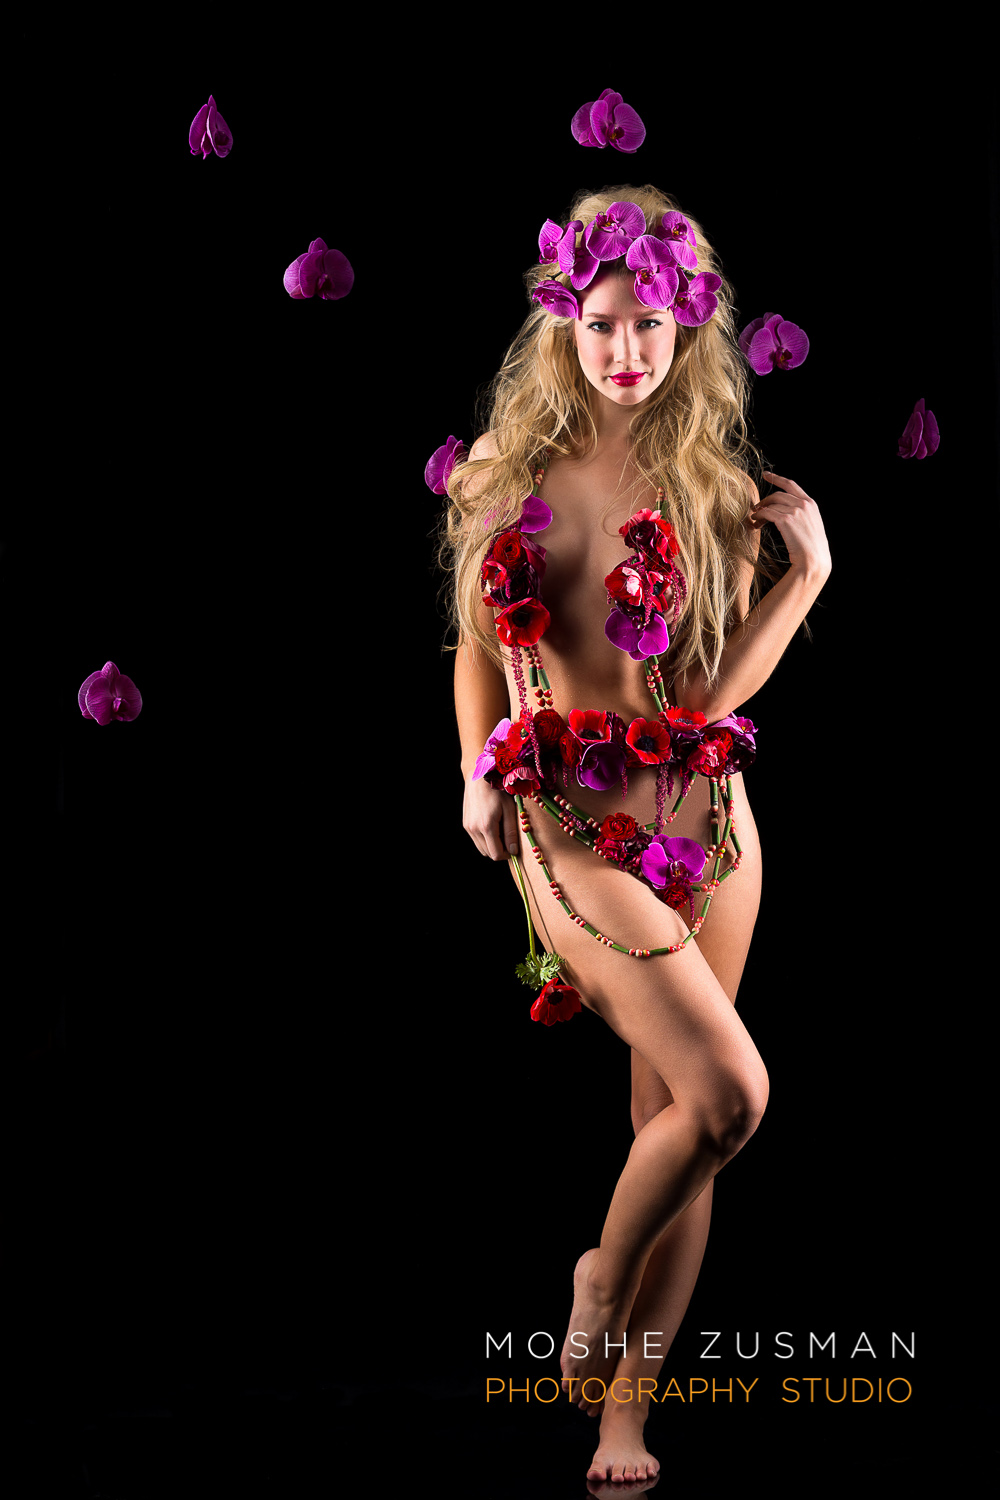 valentines_day_sexy_orchids_flowers_Moshe_Zusman_Photography-09.jpg